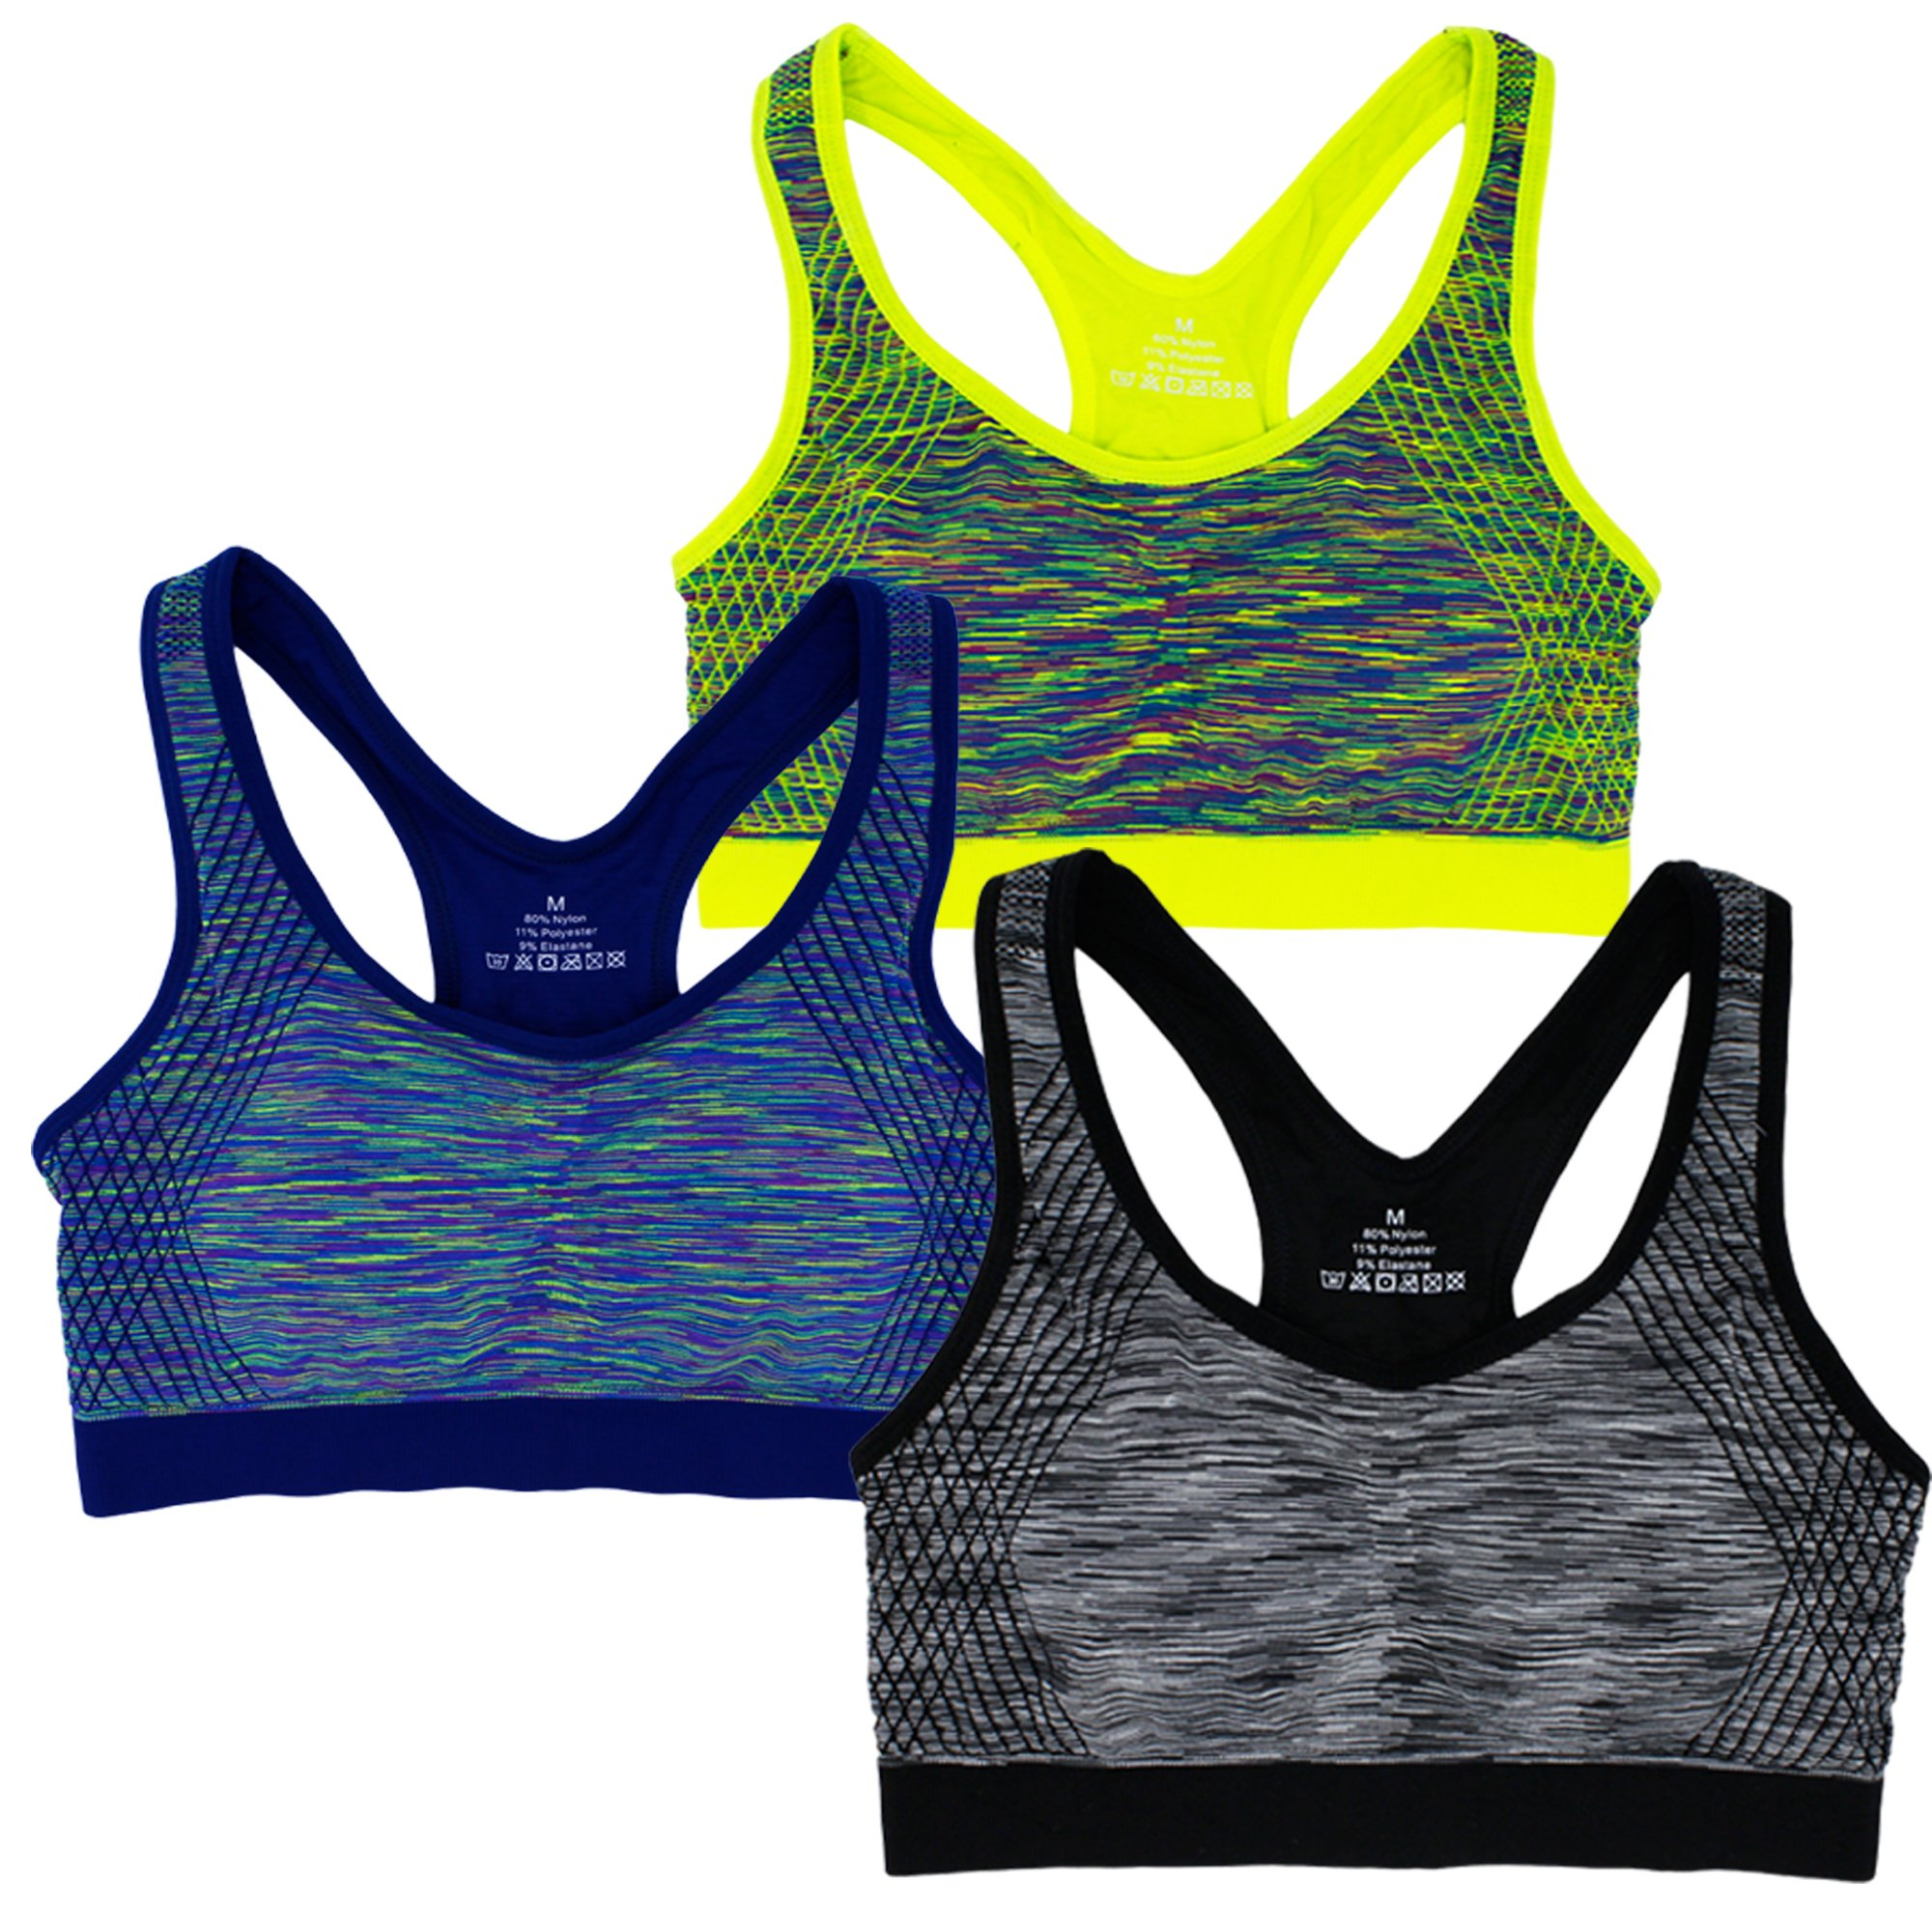 Women's Seamless Racerback Low Impact Sports Bra Wire-Free with Removable Cups (S, 3 Pack B)